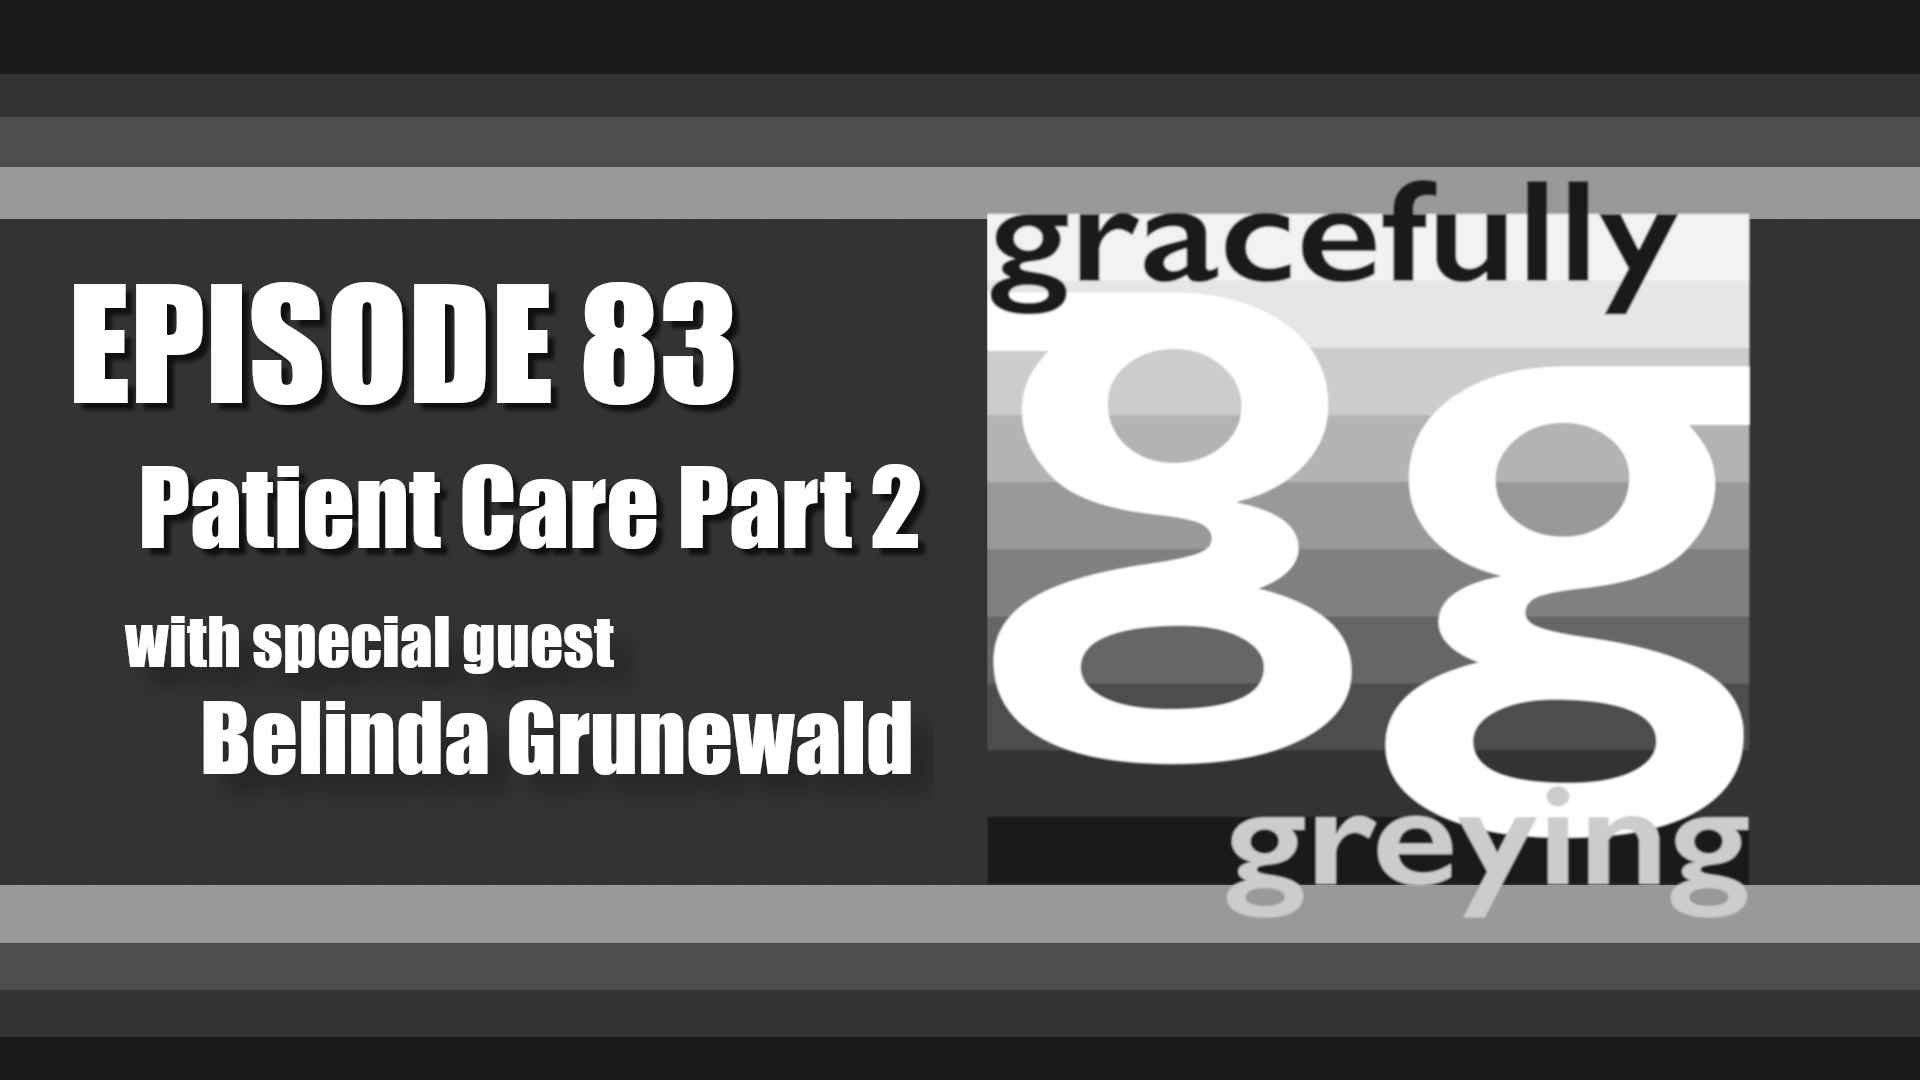 Gracefully Greying - Episode 83